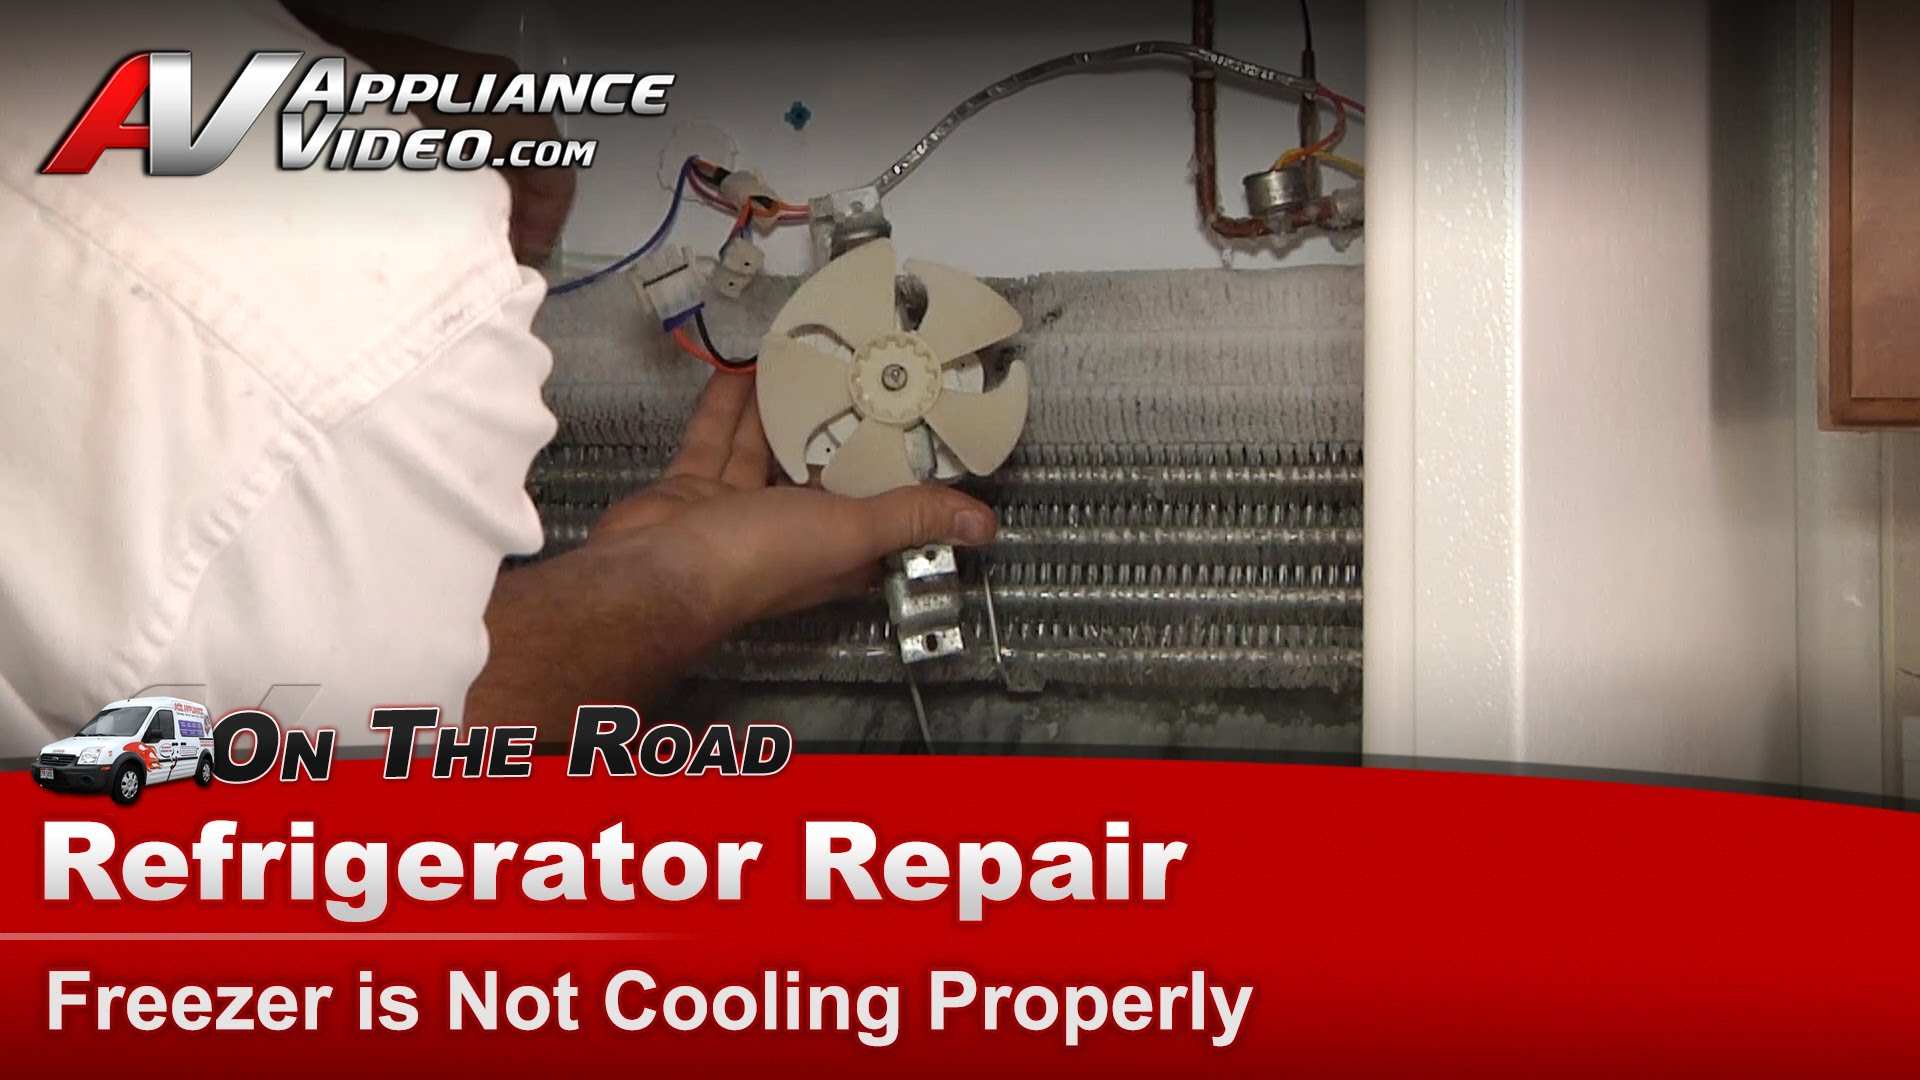 Hotpoint Hts16hbmfrww Refrigerator Repair Freezer Is Not Cooling Properly Evaporator Fan Motor Liance Video